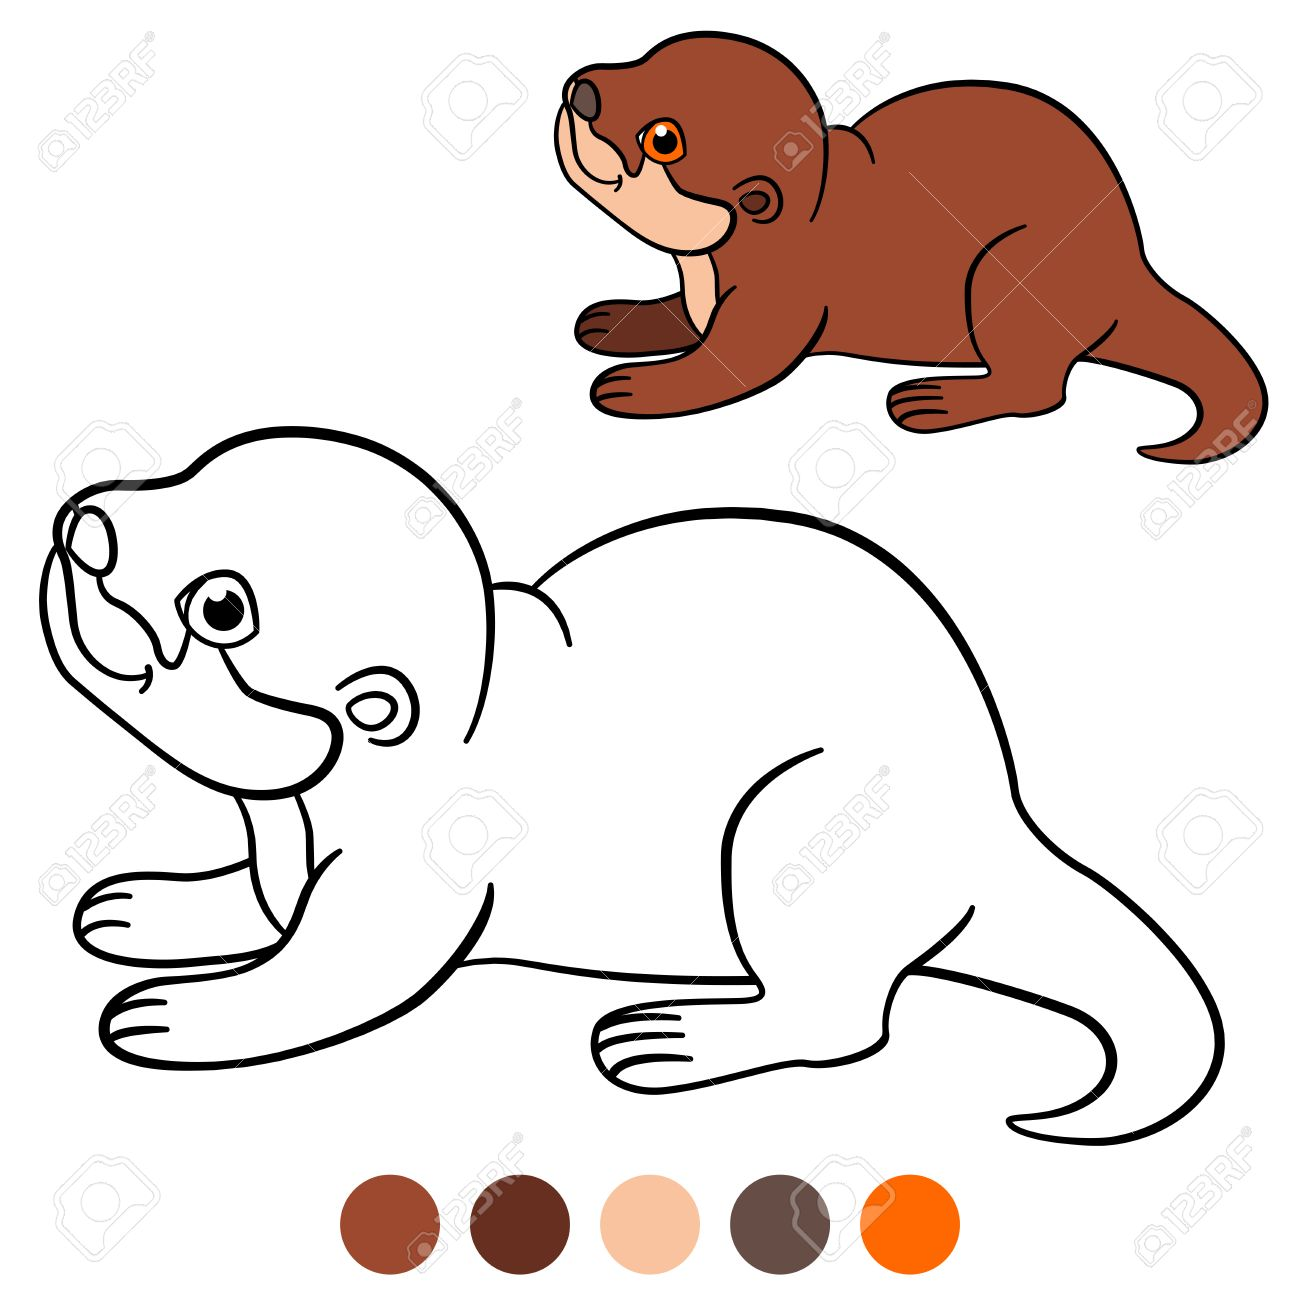 Coloring Page. Little Cute Baby Otter Stands And Smiles. Stock Vector    62916165